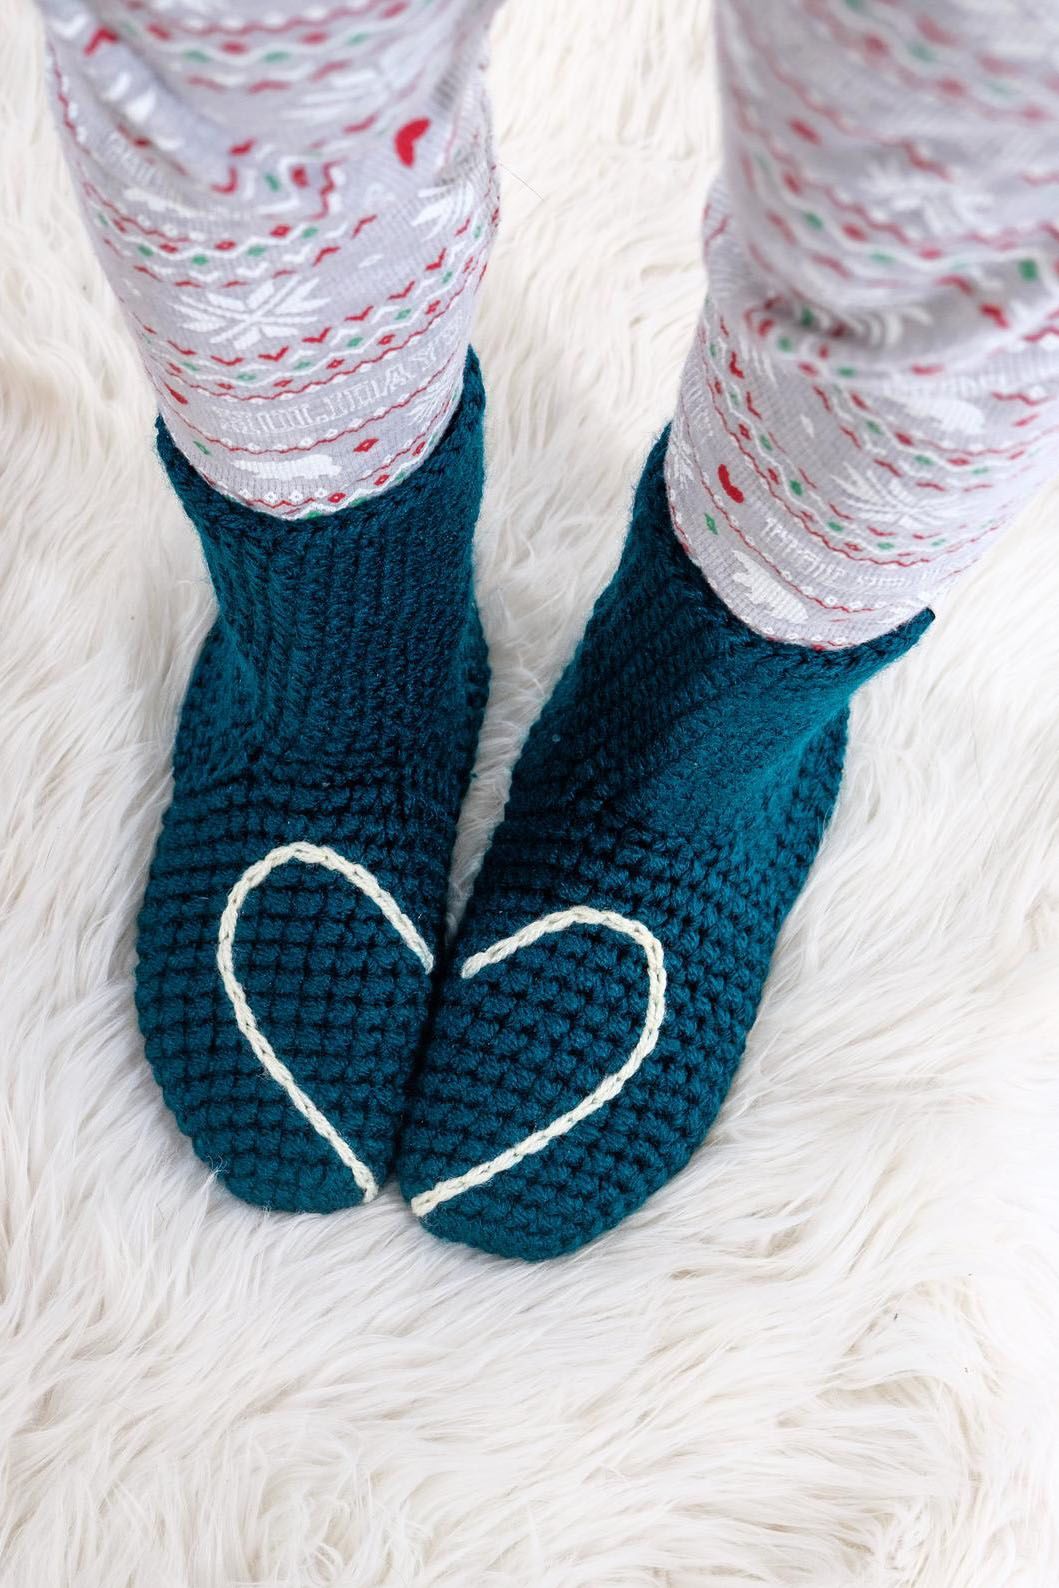 No pair of holiday pajamas are complete without a cozy pair of socks. Chunky handmade slipper socks with a love heart design that shows when your feet stand together. Crocheted with a nice thick yarn, these socks are perfect to use as house or bed socks and there's even a protective layer on the sole to help prevent wear.